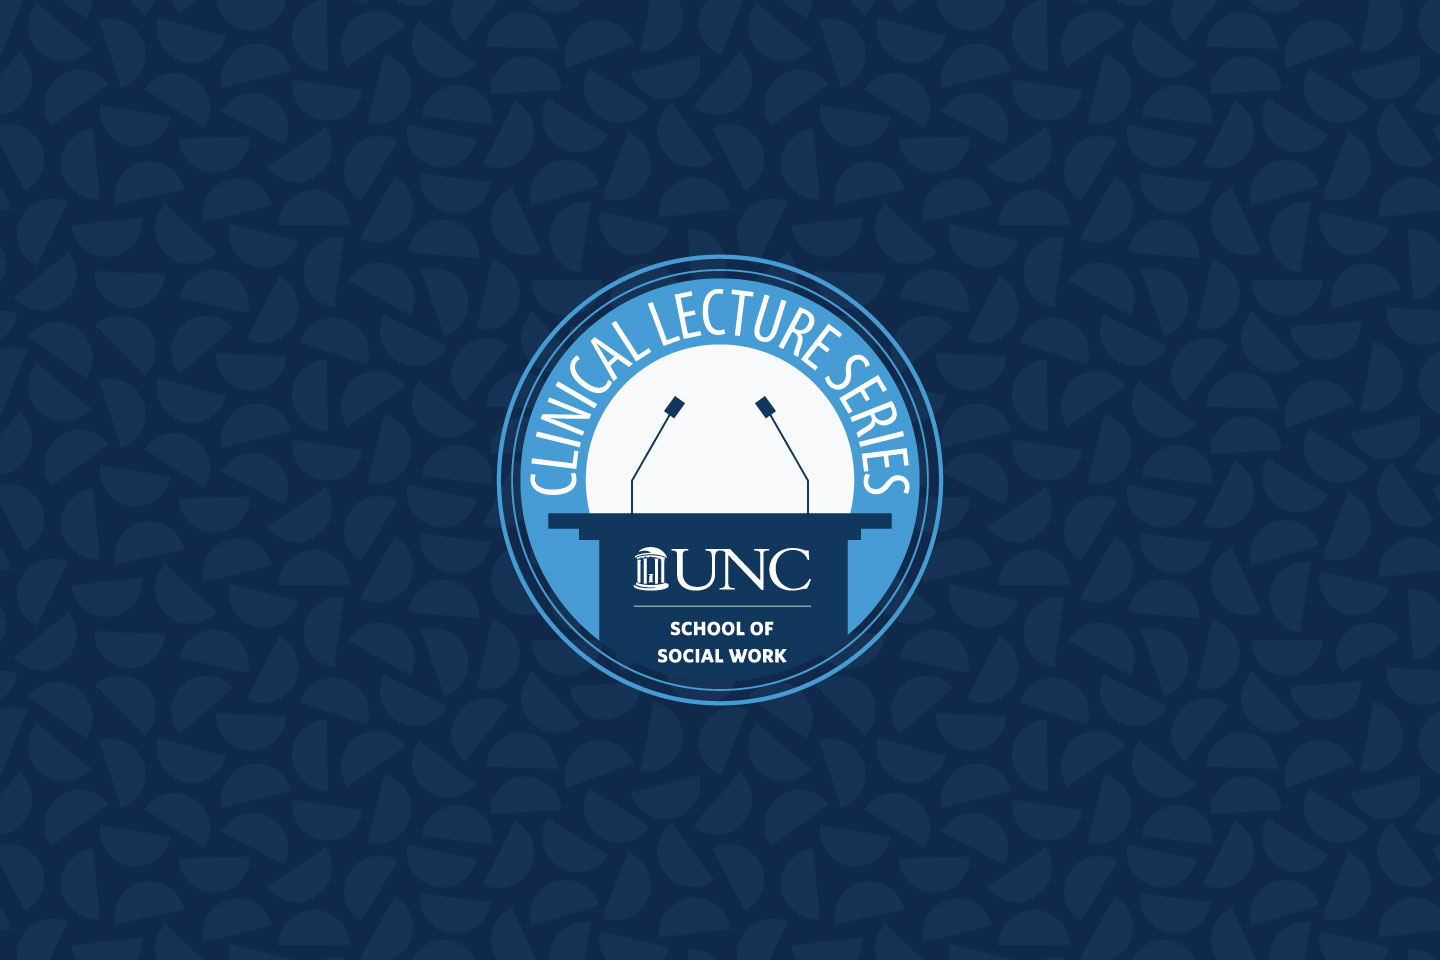 """Illustration on navy background, with microphones above a lectern labeled """"Clinical Lecture Series"""""""